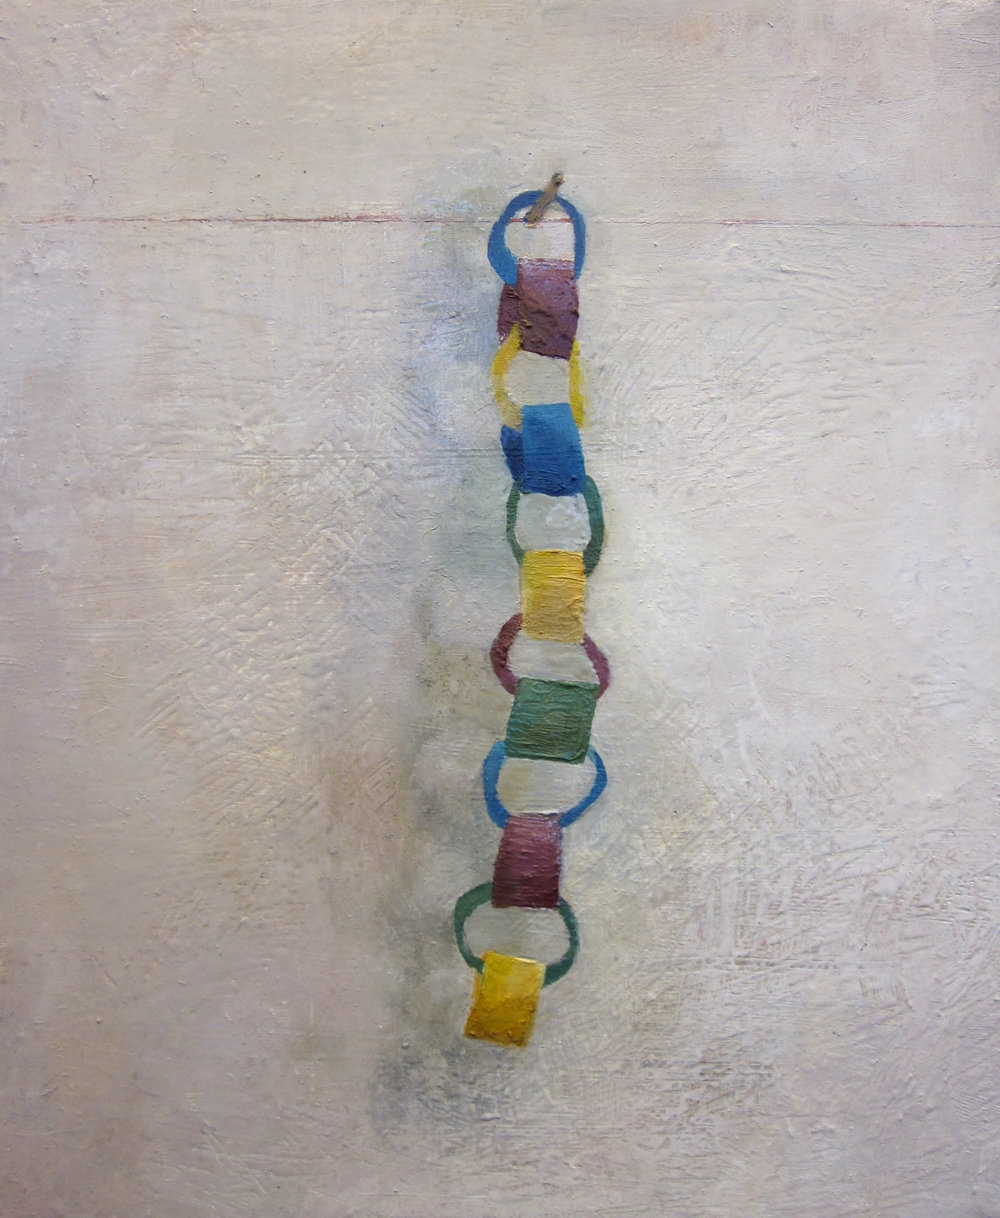 Chain, Oil on Canvas, 12 x 8 inches, 2011